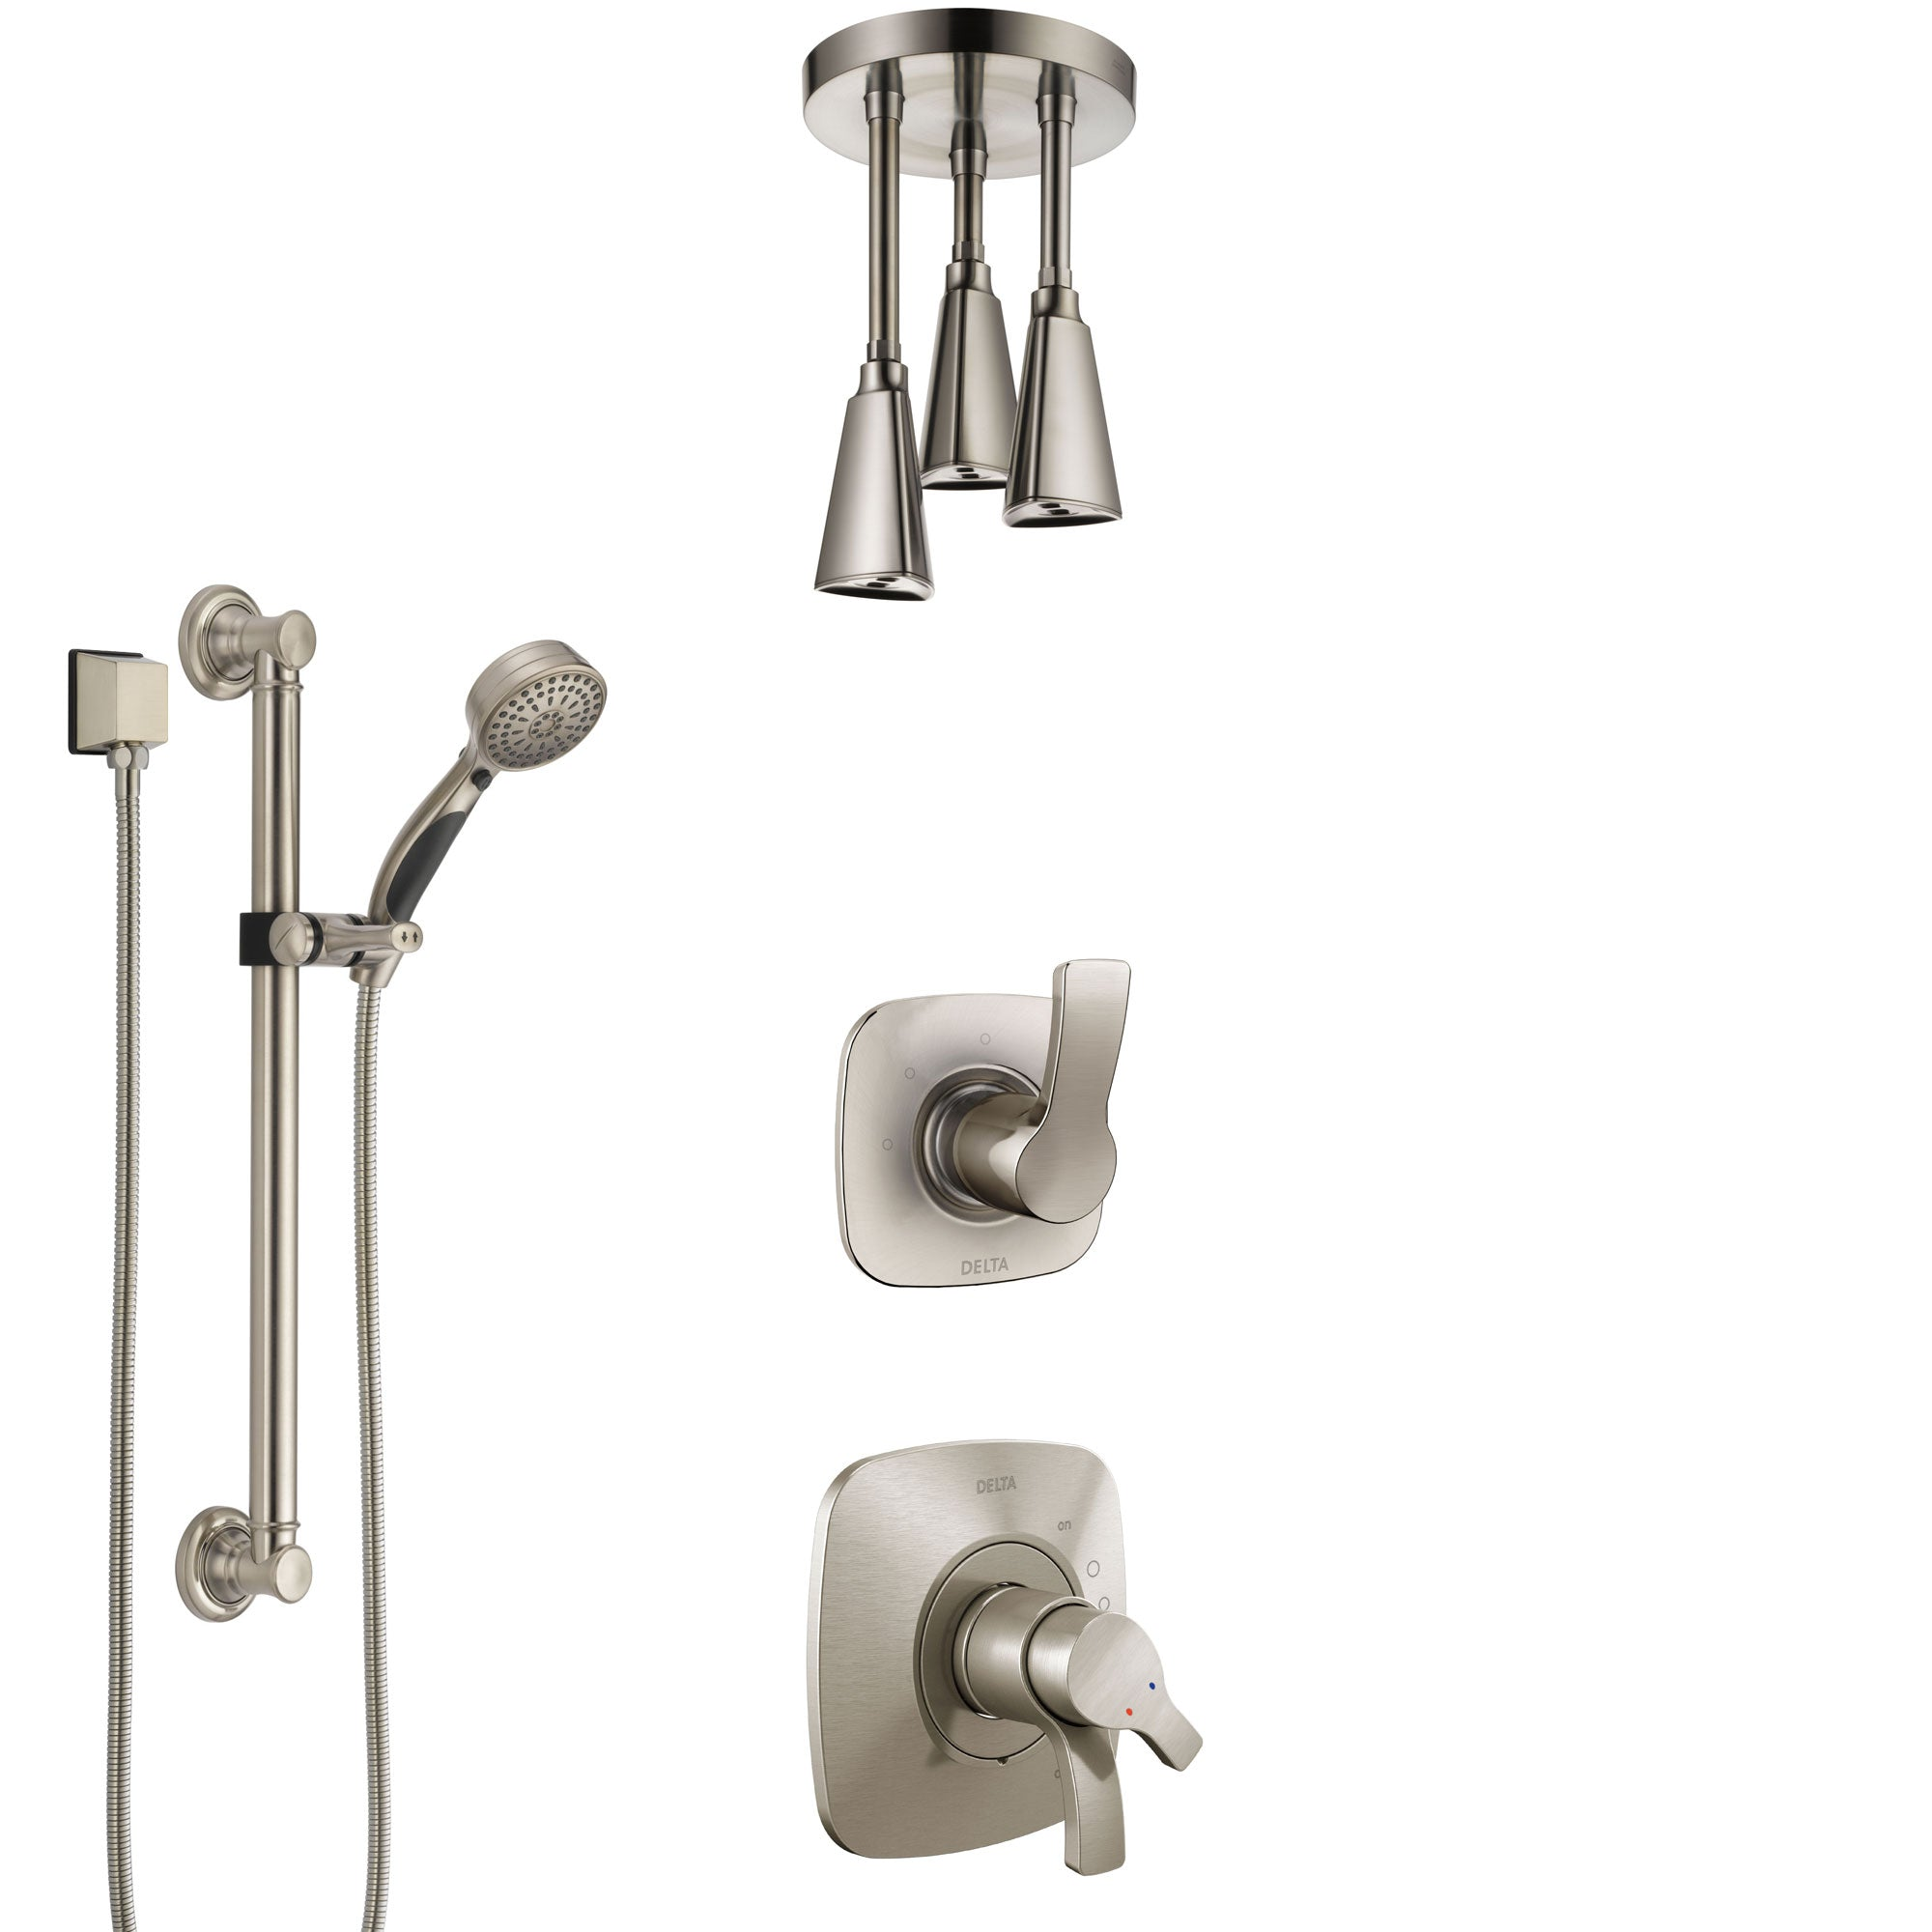 Delta Tesla Stainless Steel Finish Shower System with Dual Control Handle, Diverter, Ceiling Mount Showerhead, and Hand Shower with Grab Bar SS1752SS3